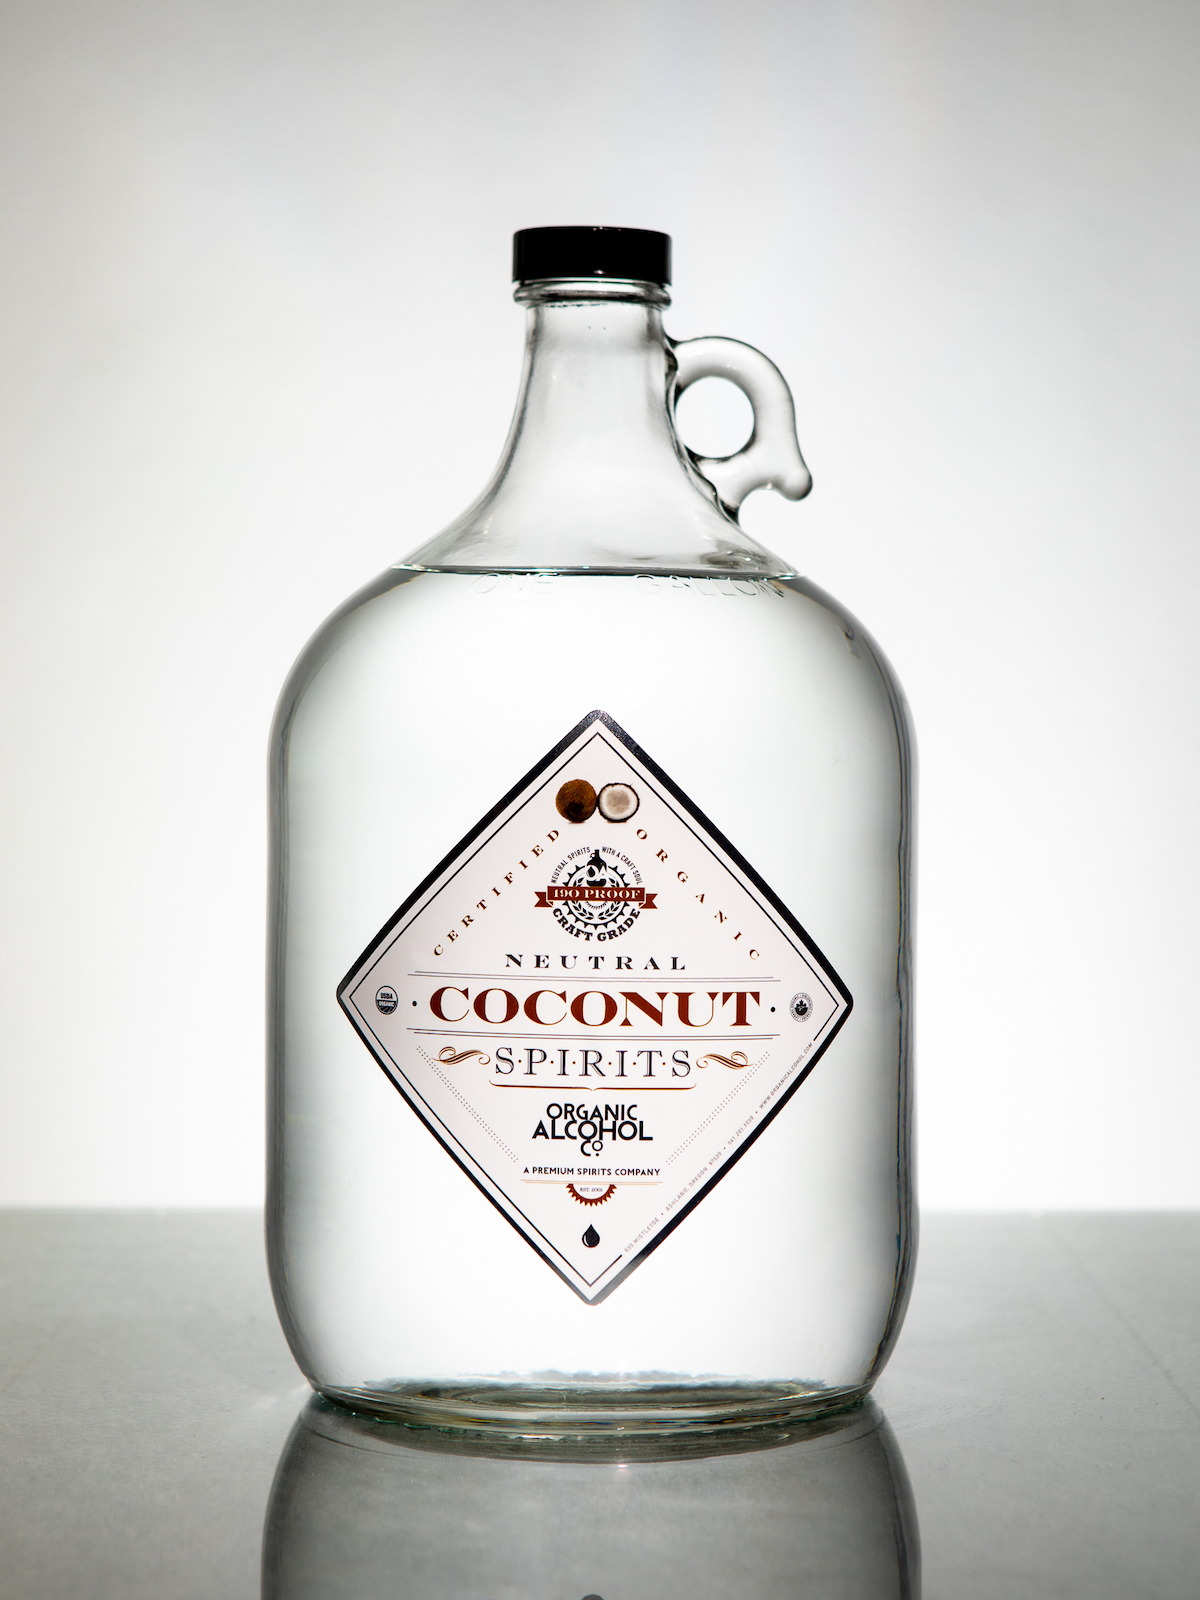 Organic Coconut Alcohol - Certified Organic Coconut Alcohol